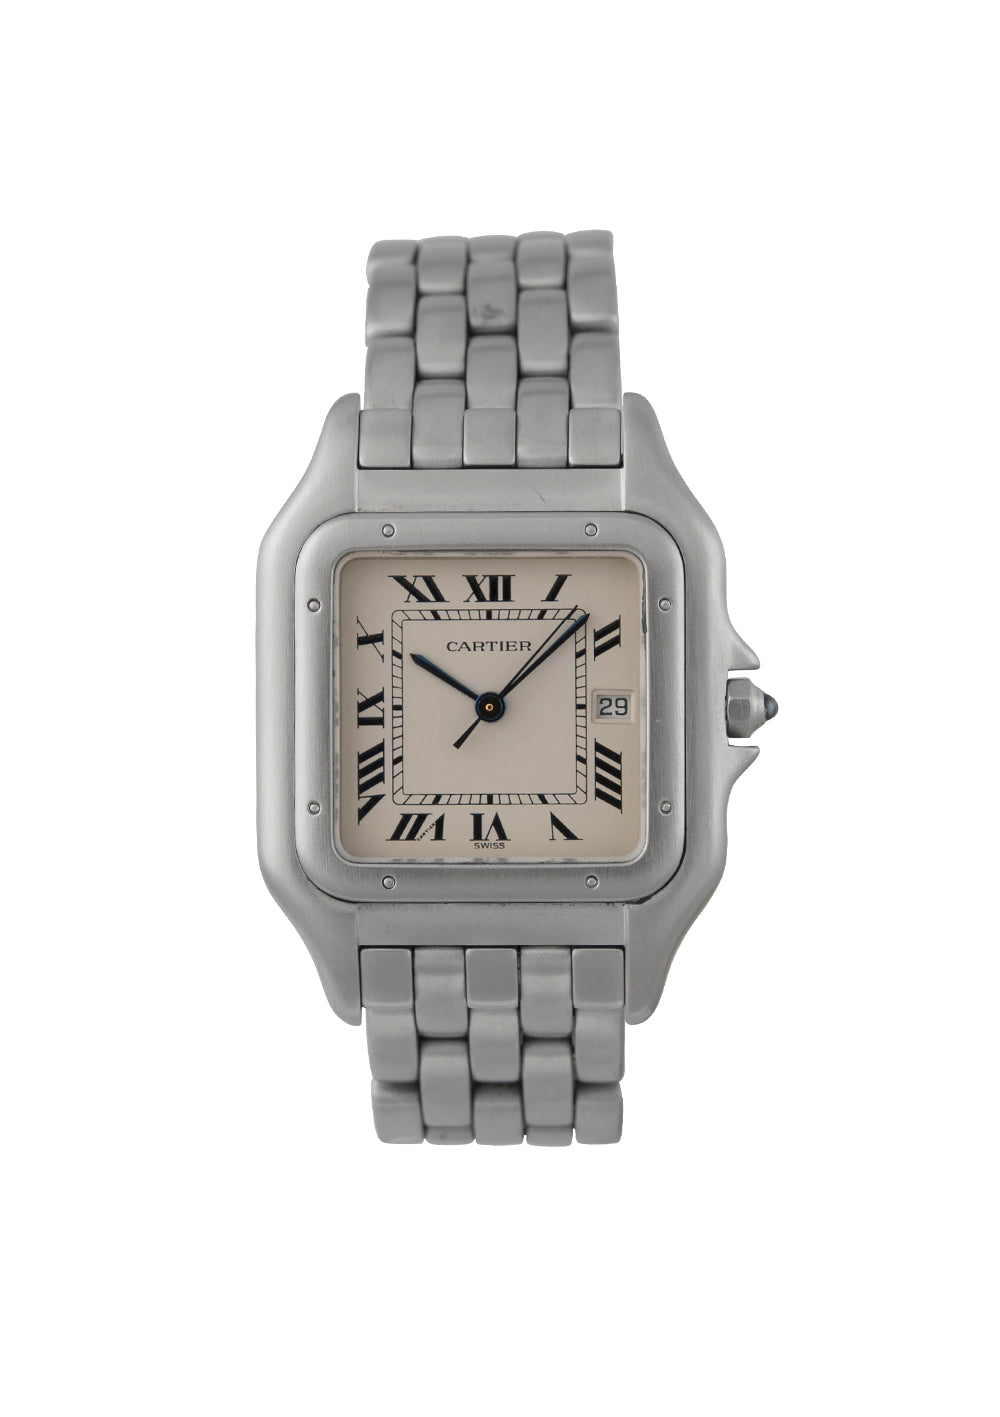 Cartier Panth̬re Gents Stainless Steel Watch, Ref: 1300